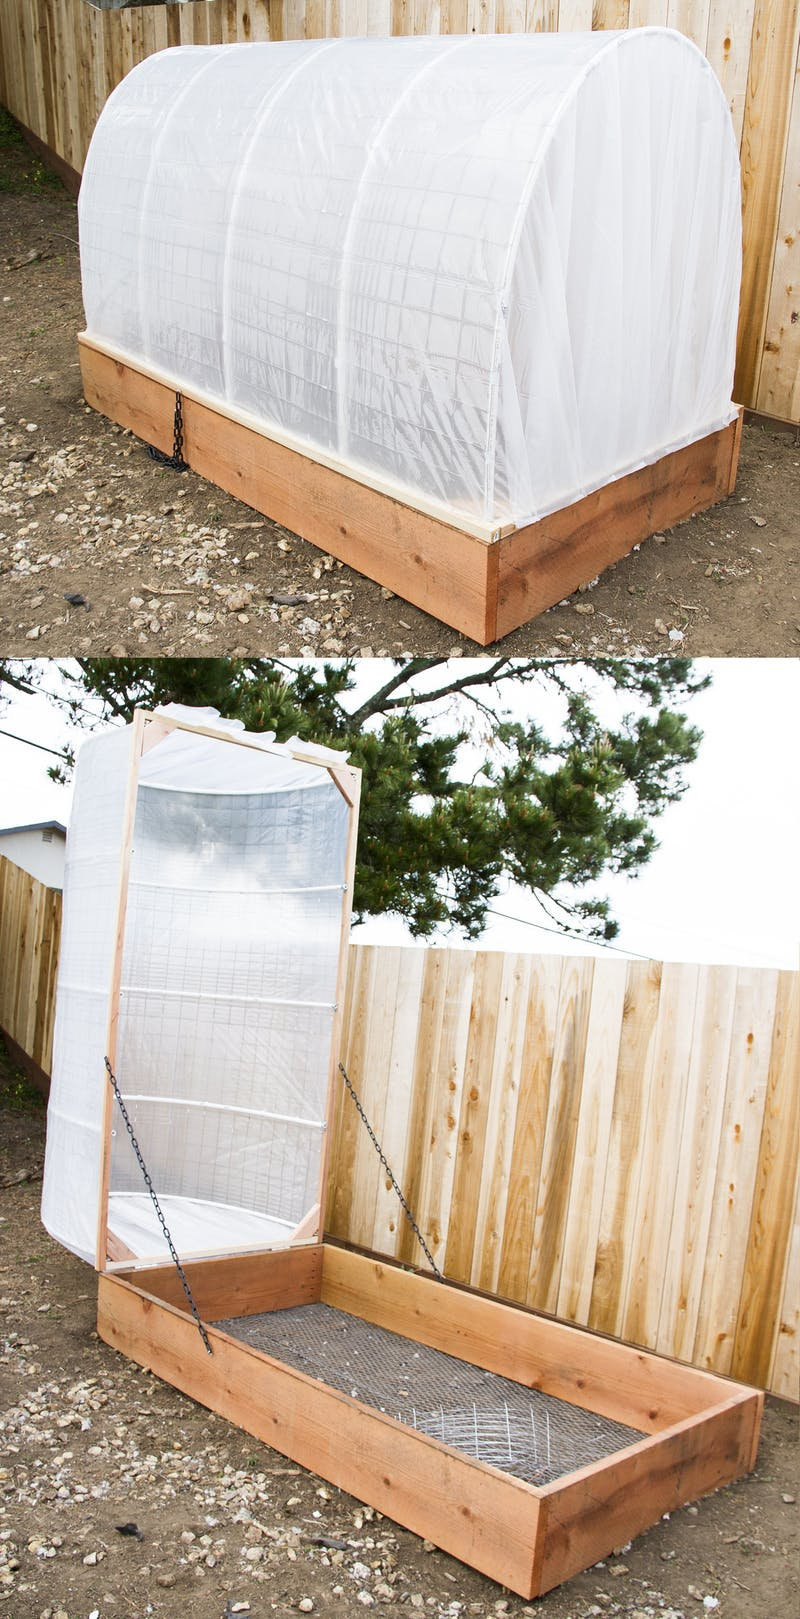 12 Free Raised Garden Bed Plans in 2020 Diy greenhouse